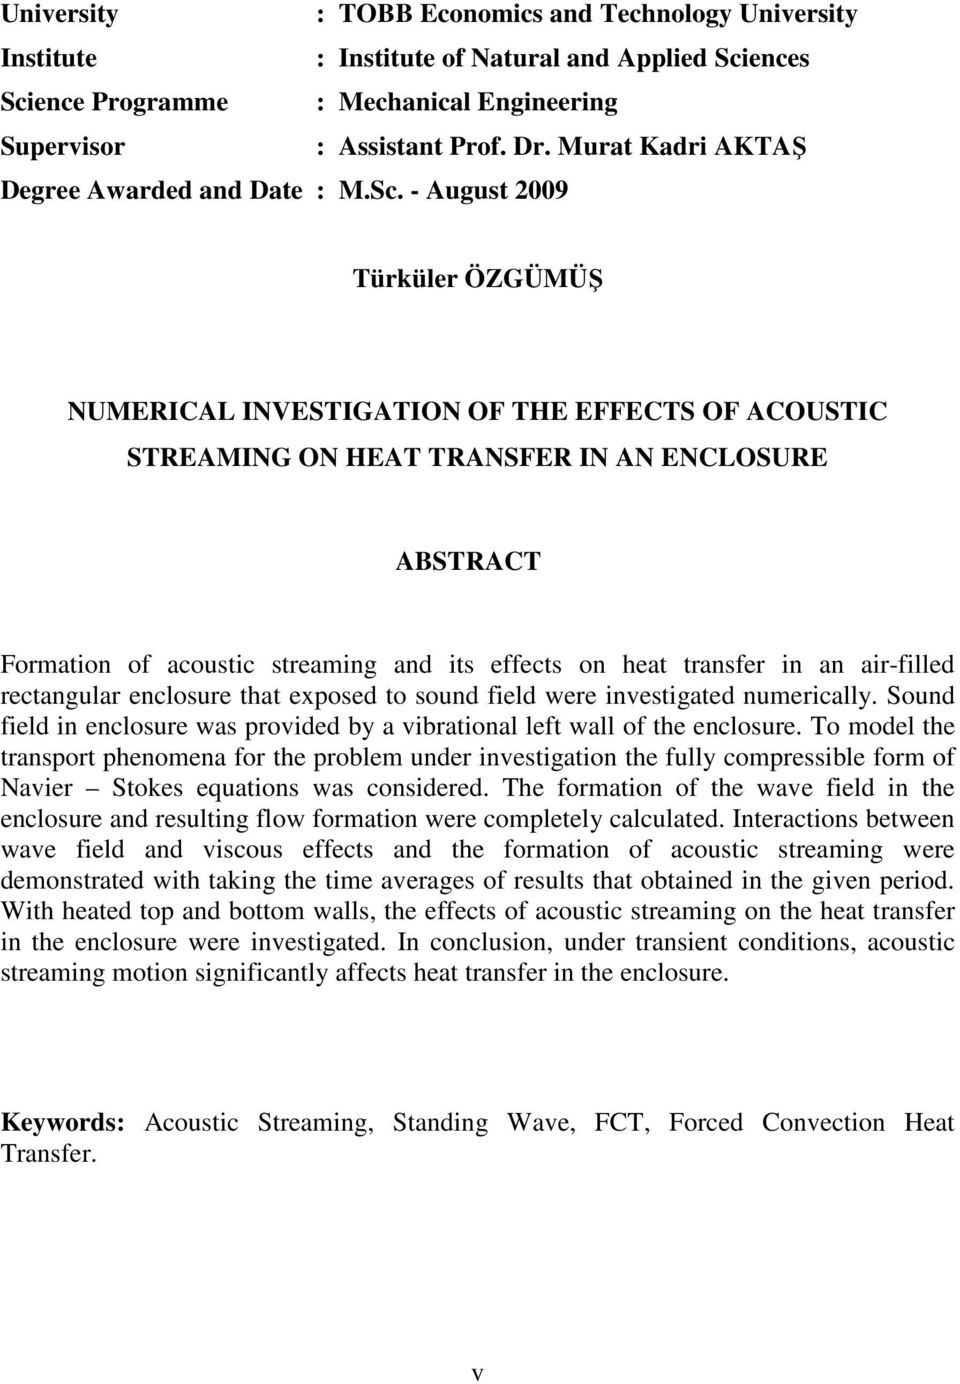 - August 9 Türküler ÖZGÜMÜŞ NUMERICAL INVESTIGATION OF THE EFFECTS OF ACOUSTIC STREAMING ON HEAT TRANSFER IN AN ENCLOSURE ABSTRACT Formation of acoustic streaming and its effects on heat transfer in